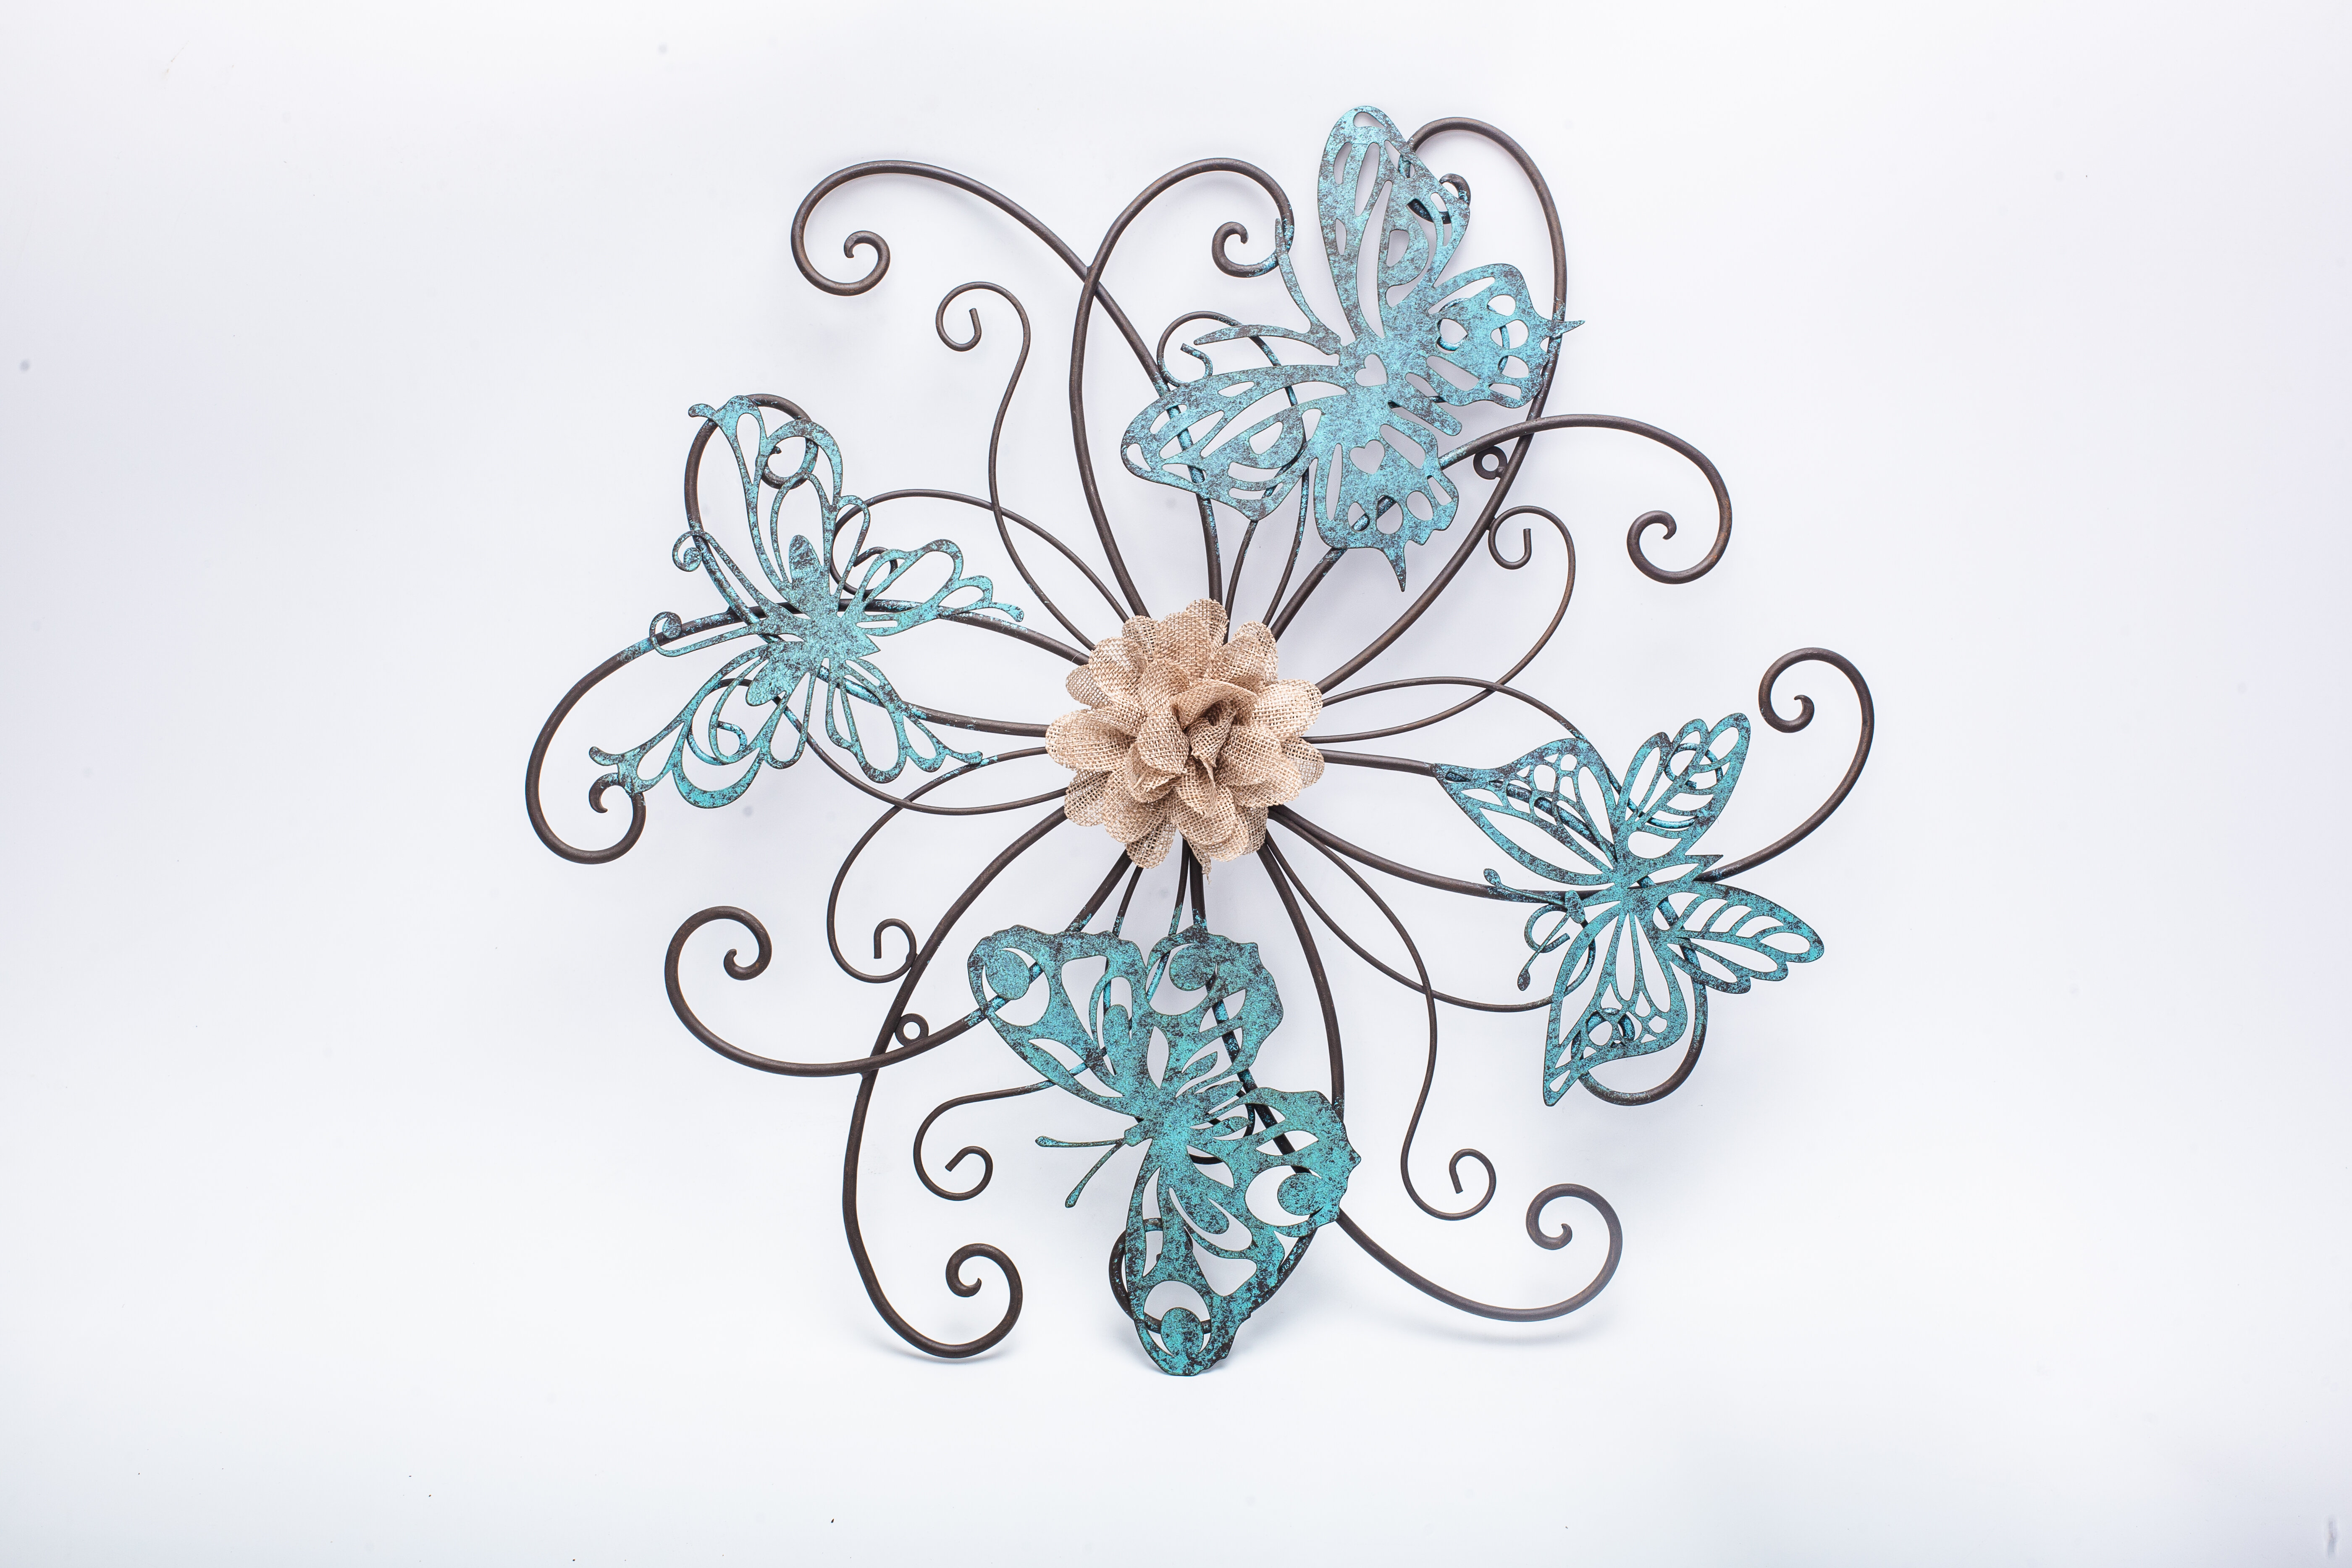 Adecotrading Flower And Butterfly Urban Design Metal Wall Décor Within Most Current Flower Urban Design Metal Wall Decor (View 5 of 20)